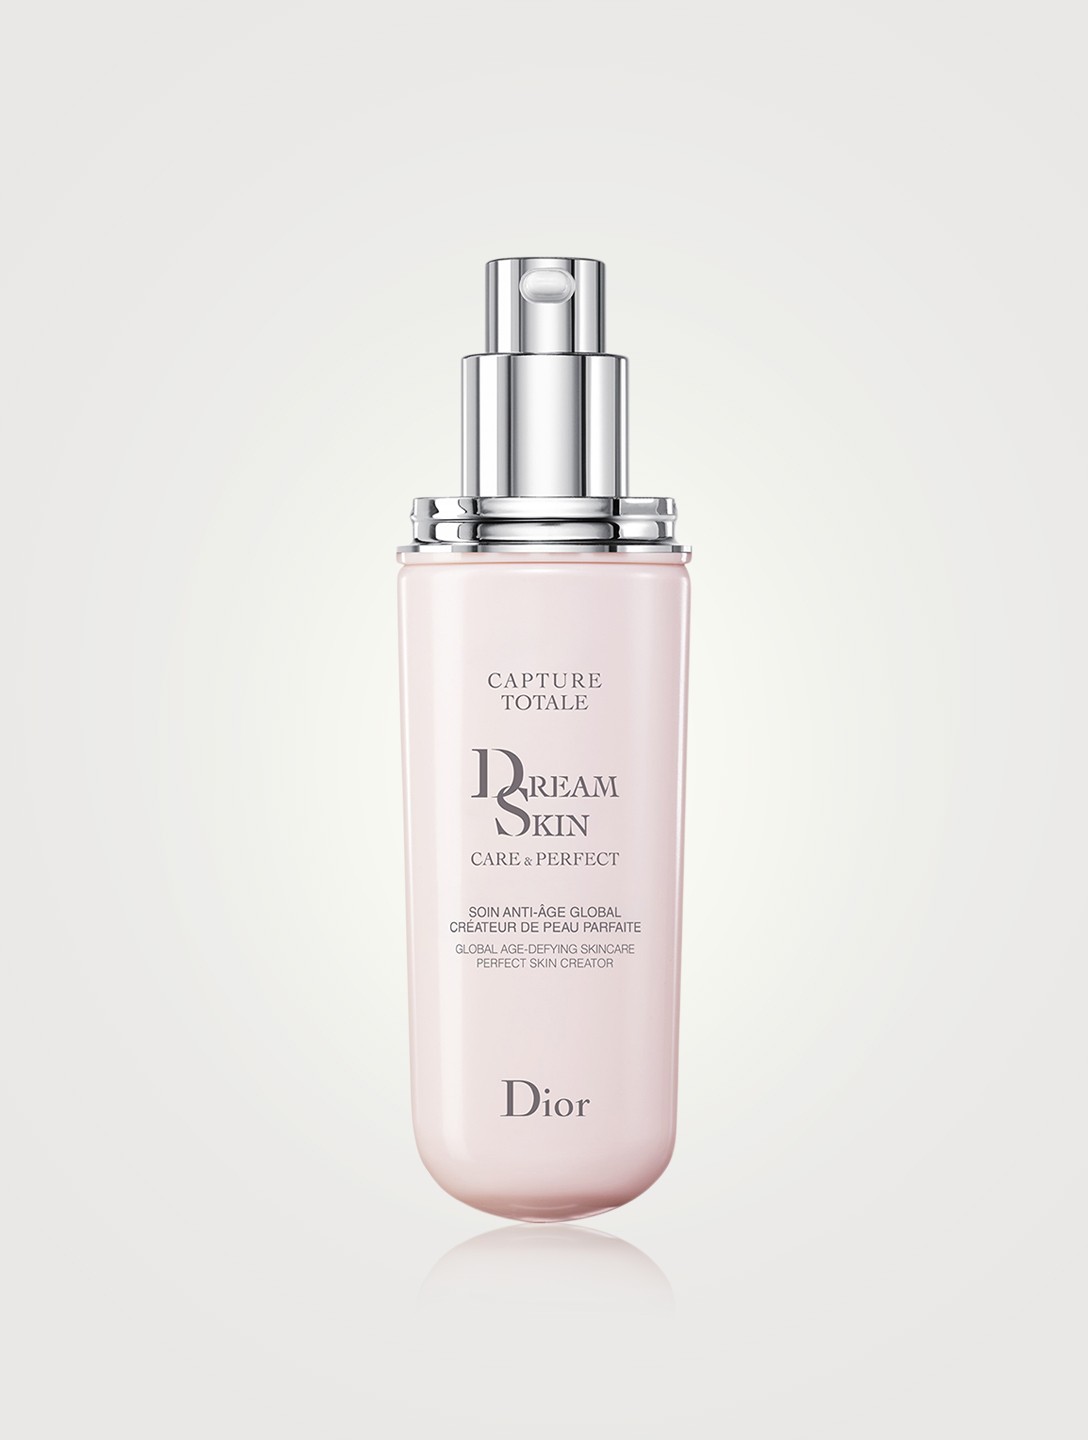 DIOR Capture Totale Dreamskin - Care & Perfect - Global Age-Defying Skincare - Perfect Skin Creator - Refill Beauty